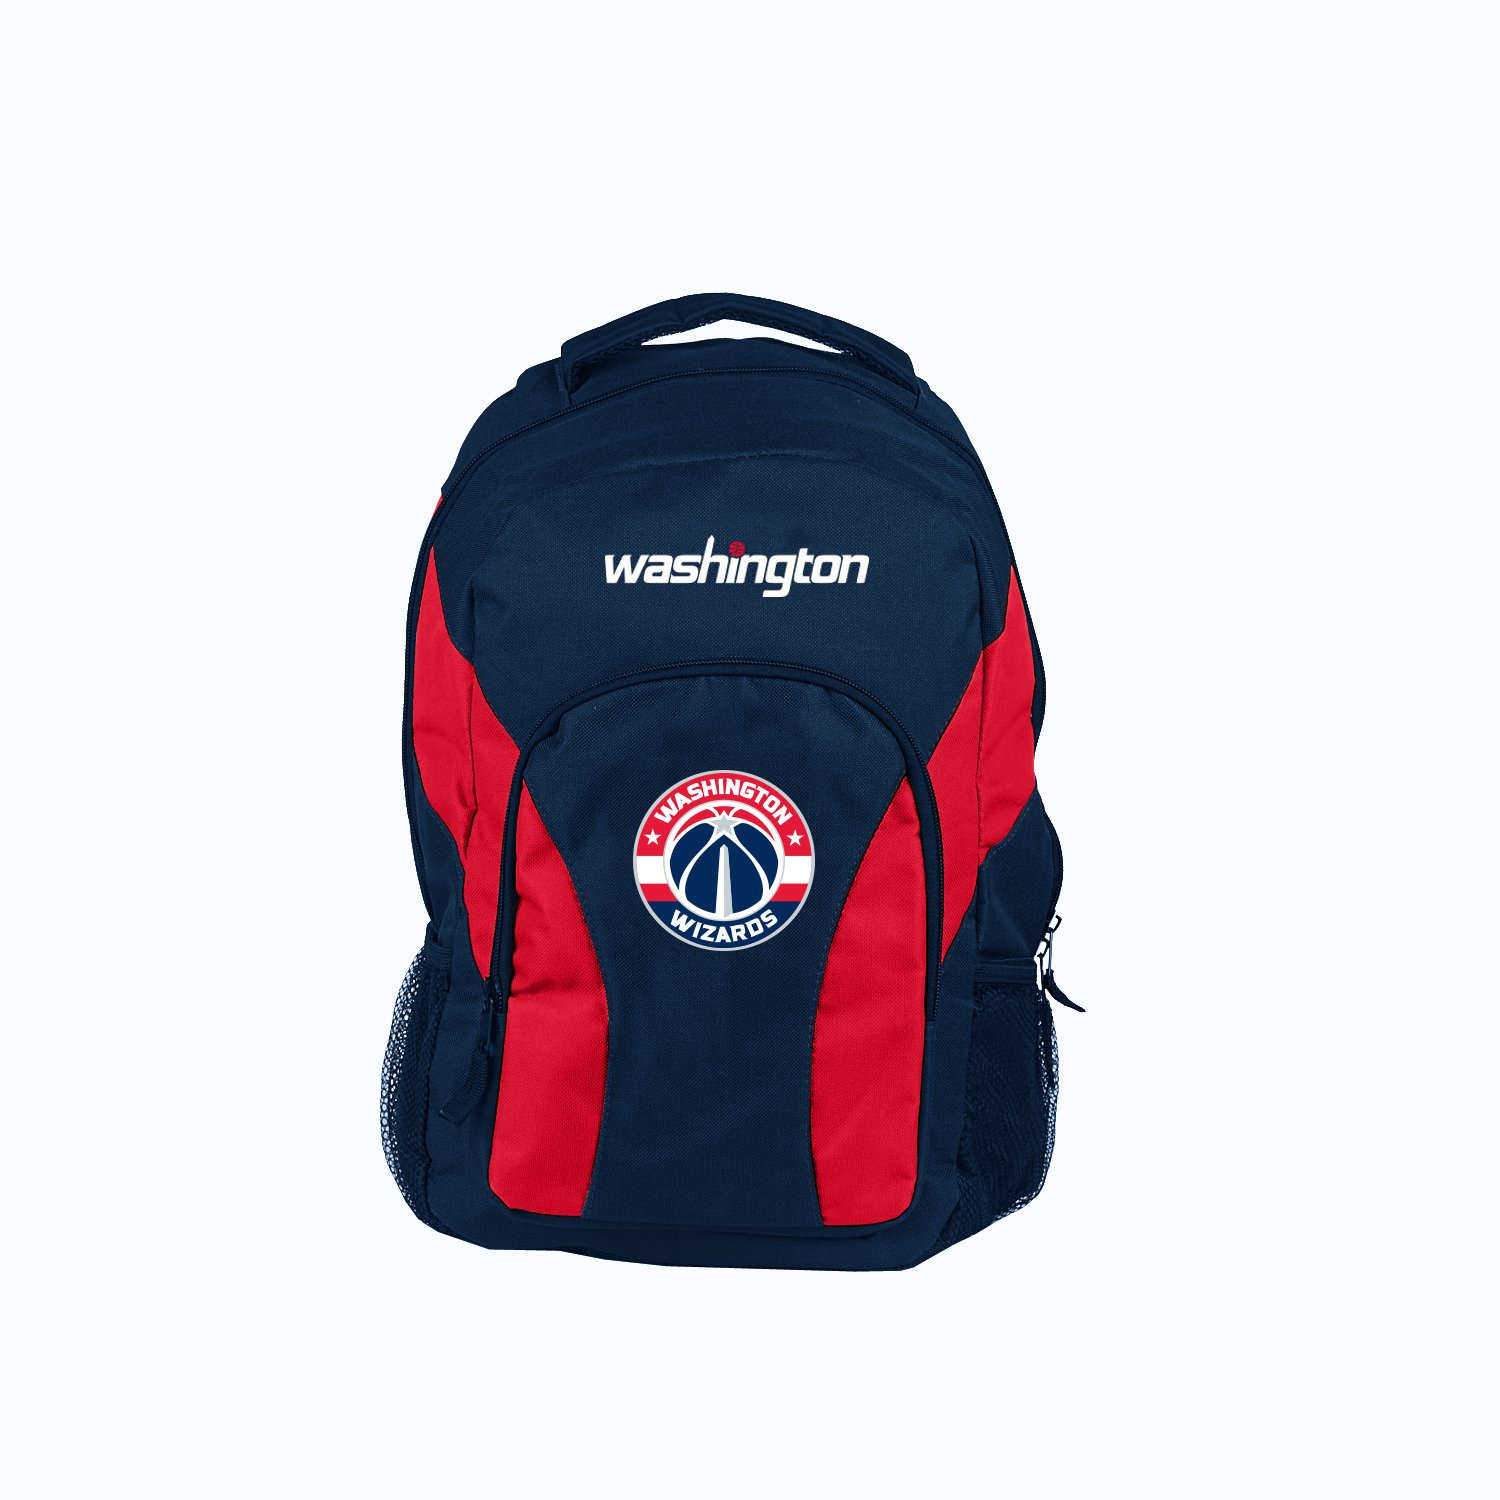 18 Black Officially Licensed NBA Washington Wizards DraftDay Backpack